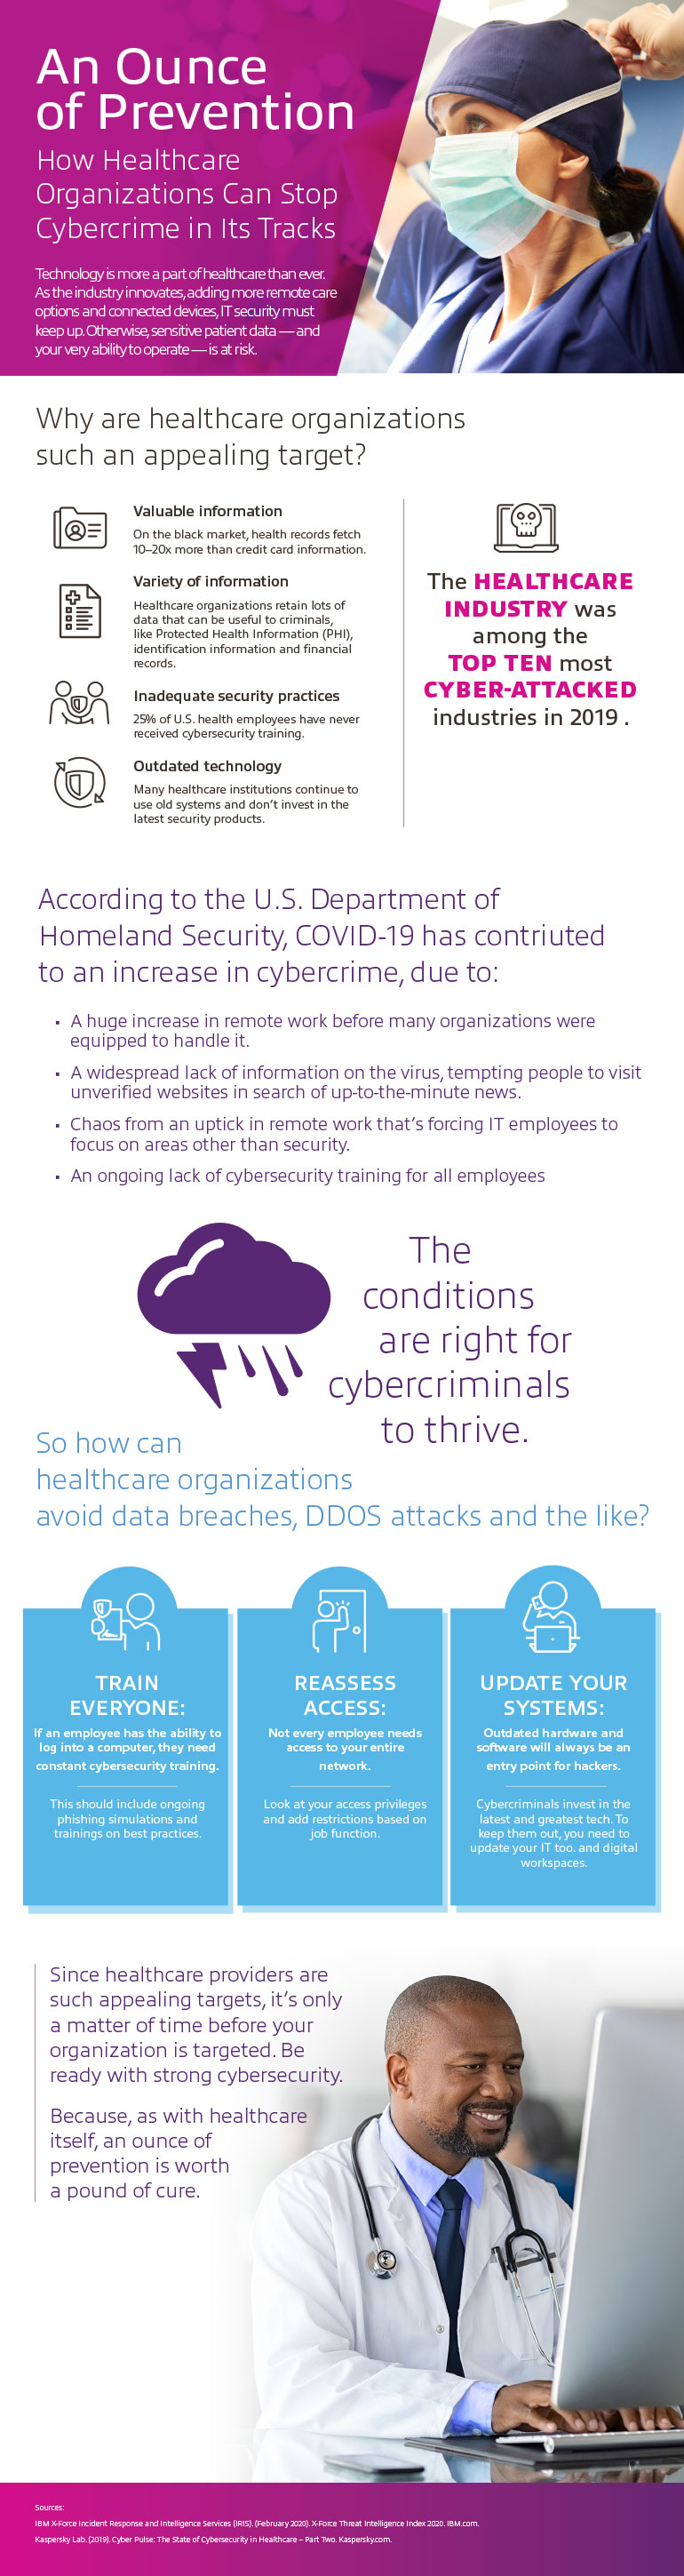 How Healthcare Organizations Can Stop Cybercrime in Its Tracks infographic